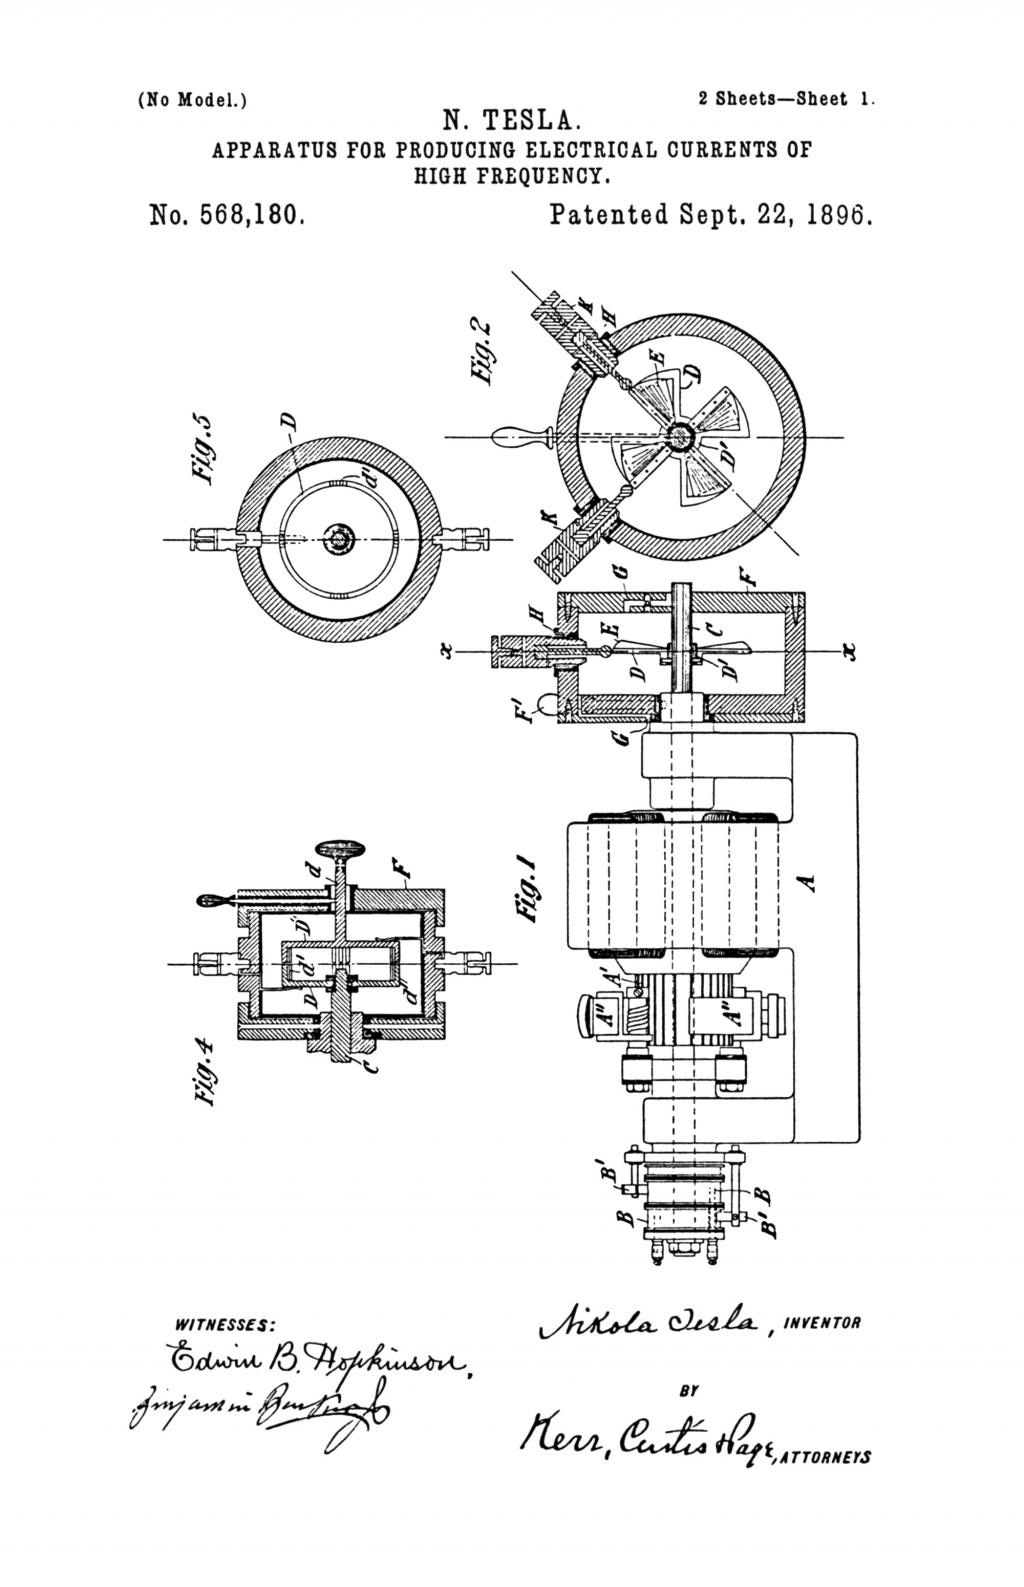 Nikola Tesla U.S. Patent 568,180 - Apparatus for Producing Electrical Currents of High Frequency - Image 1